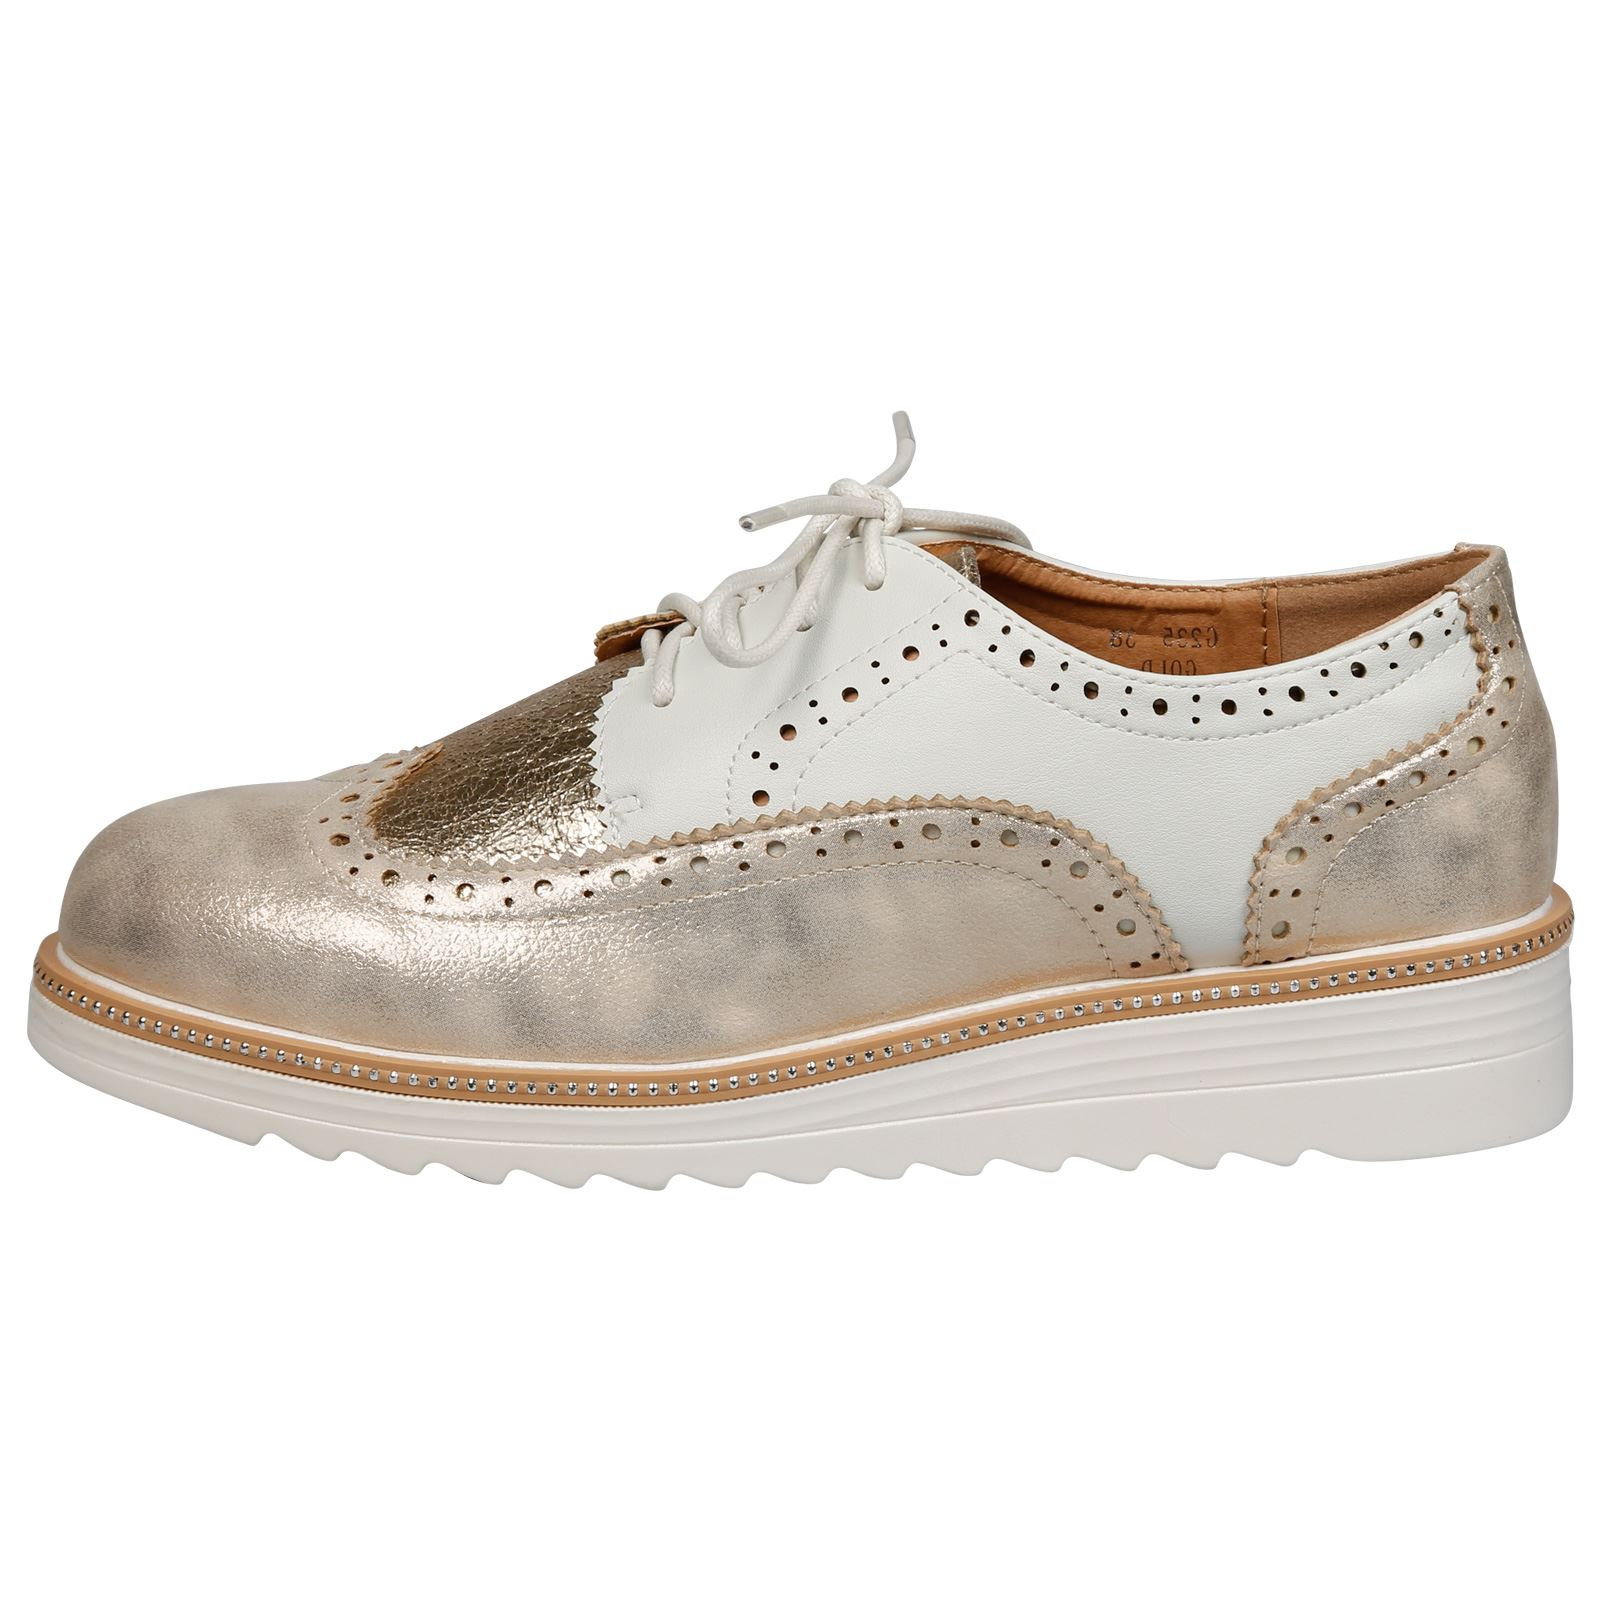 WOMENS SHOES LADIES LACE UPS BROGUES OXFORDS STUDDED LOW WEDGE FLATFORM SIZE NEW